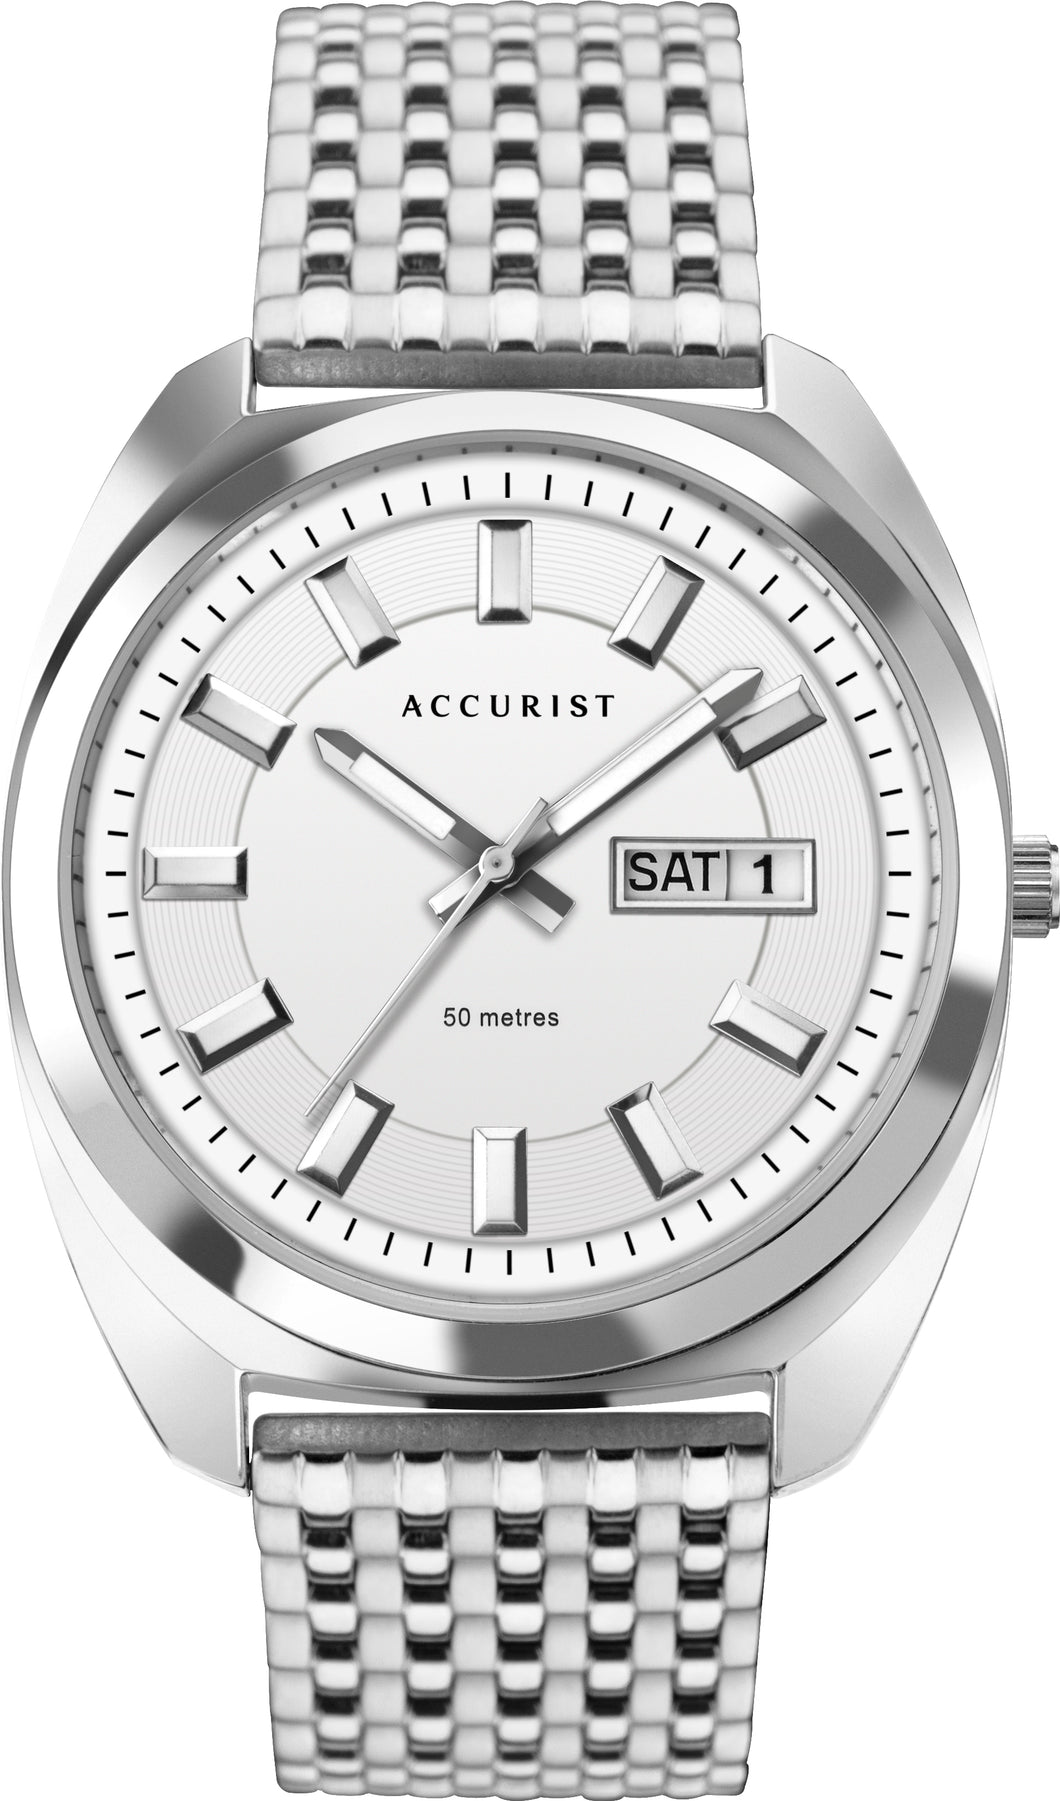 Accurist Men's Retro Inspired Bracelet Watch Product Code - 7334